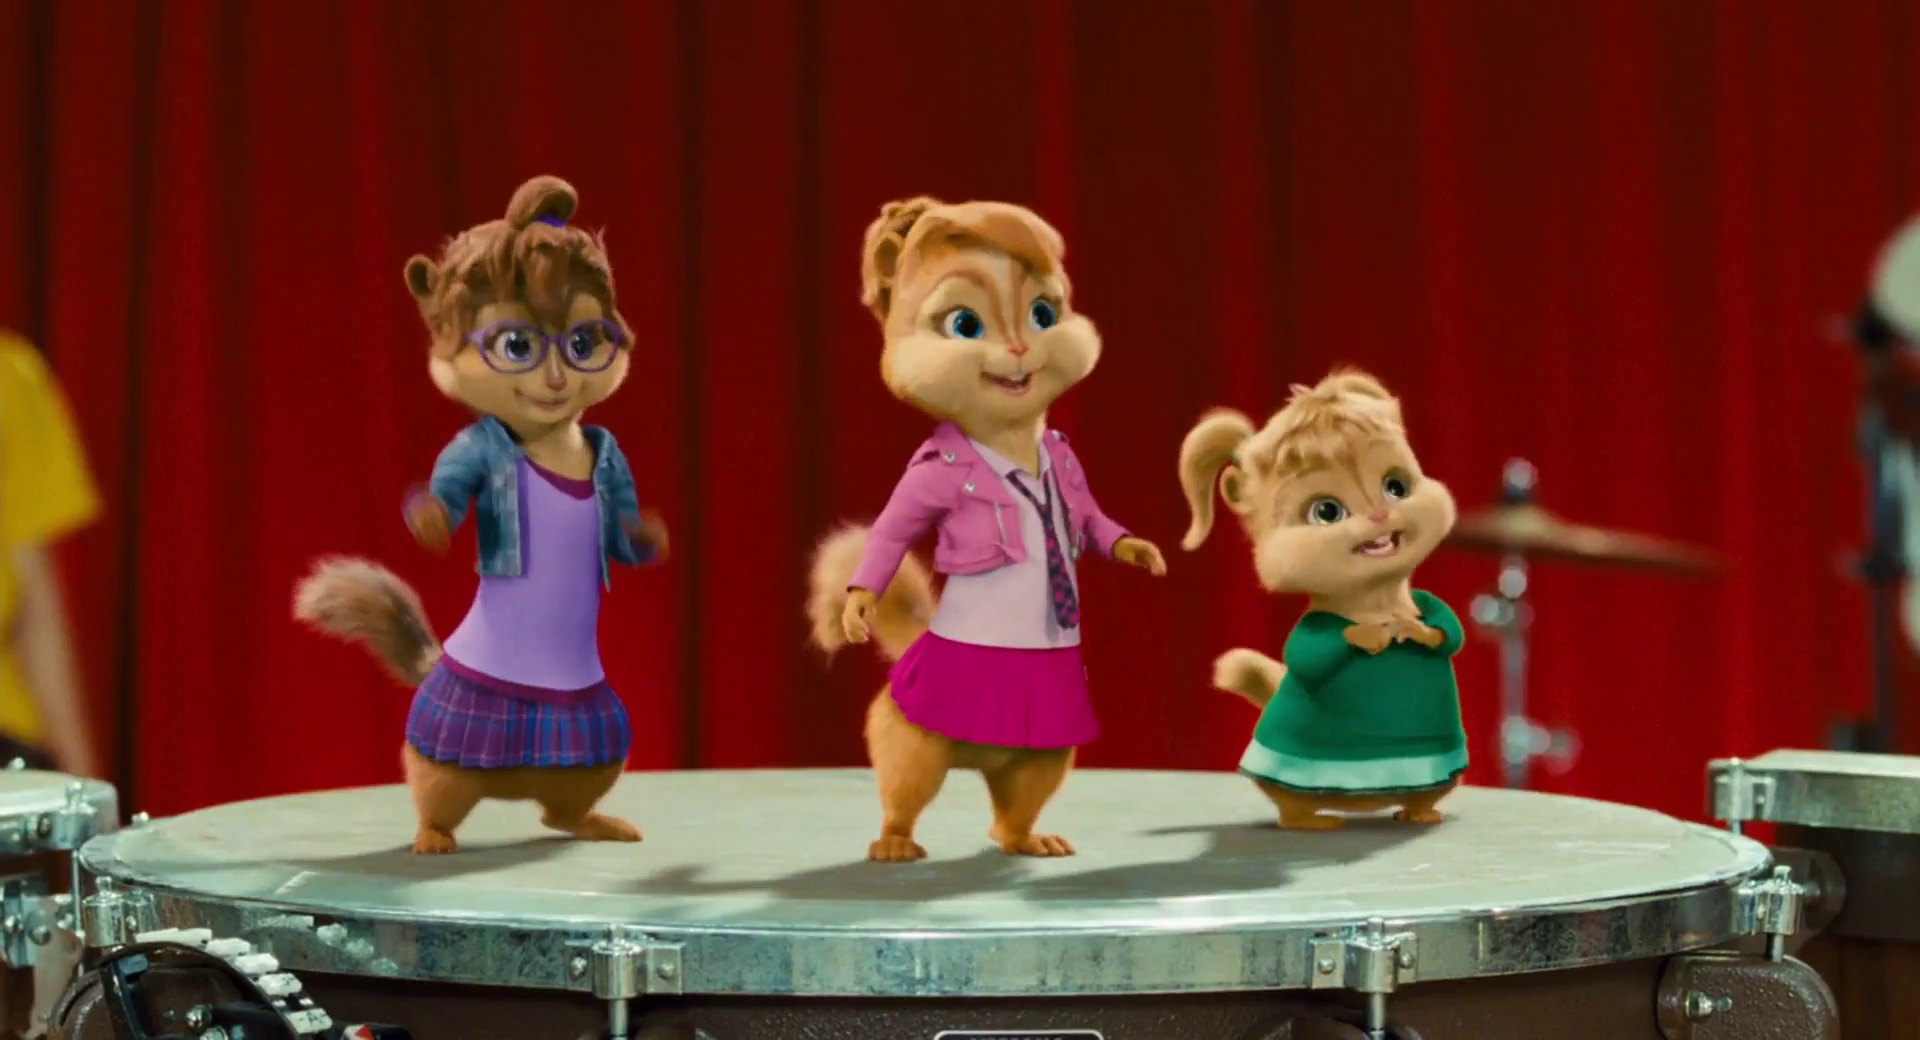 Introducing the Chipettes in Alvin and the Chipmunks: The Squeakquel (2009)